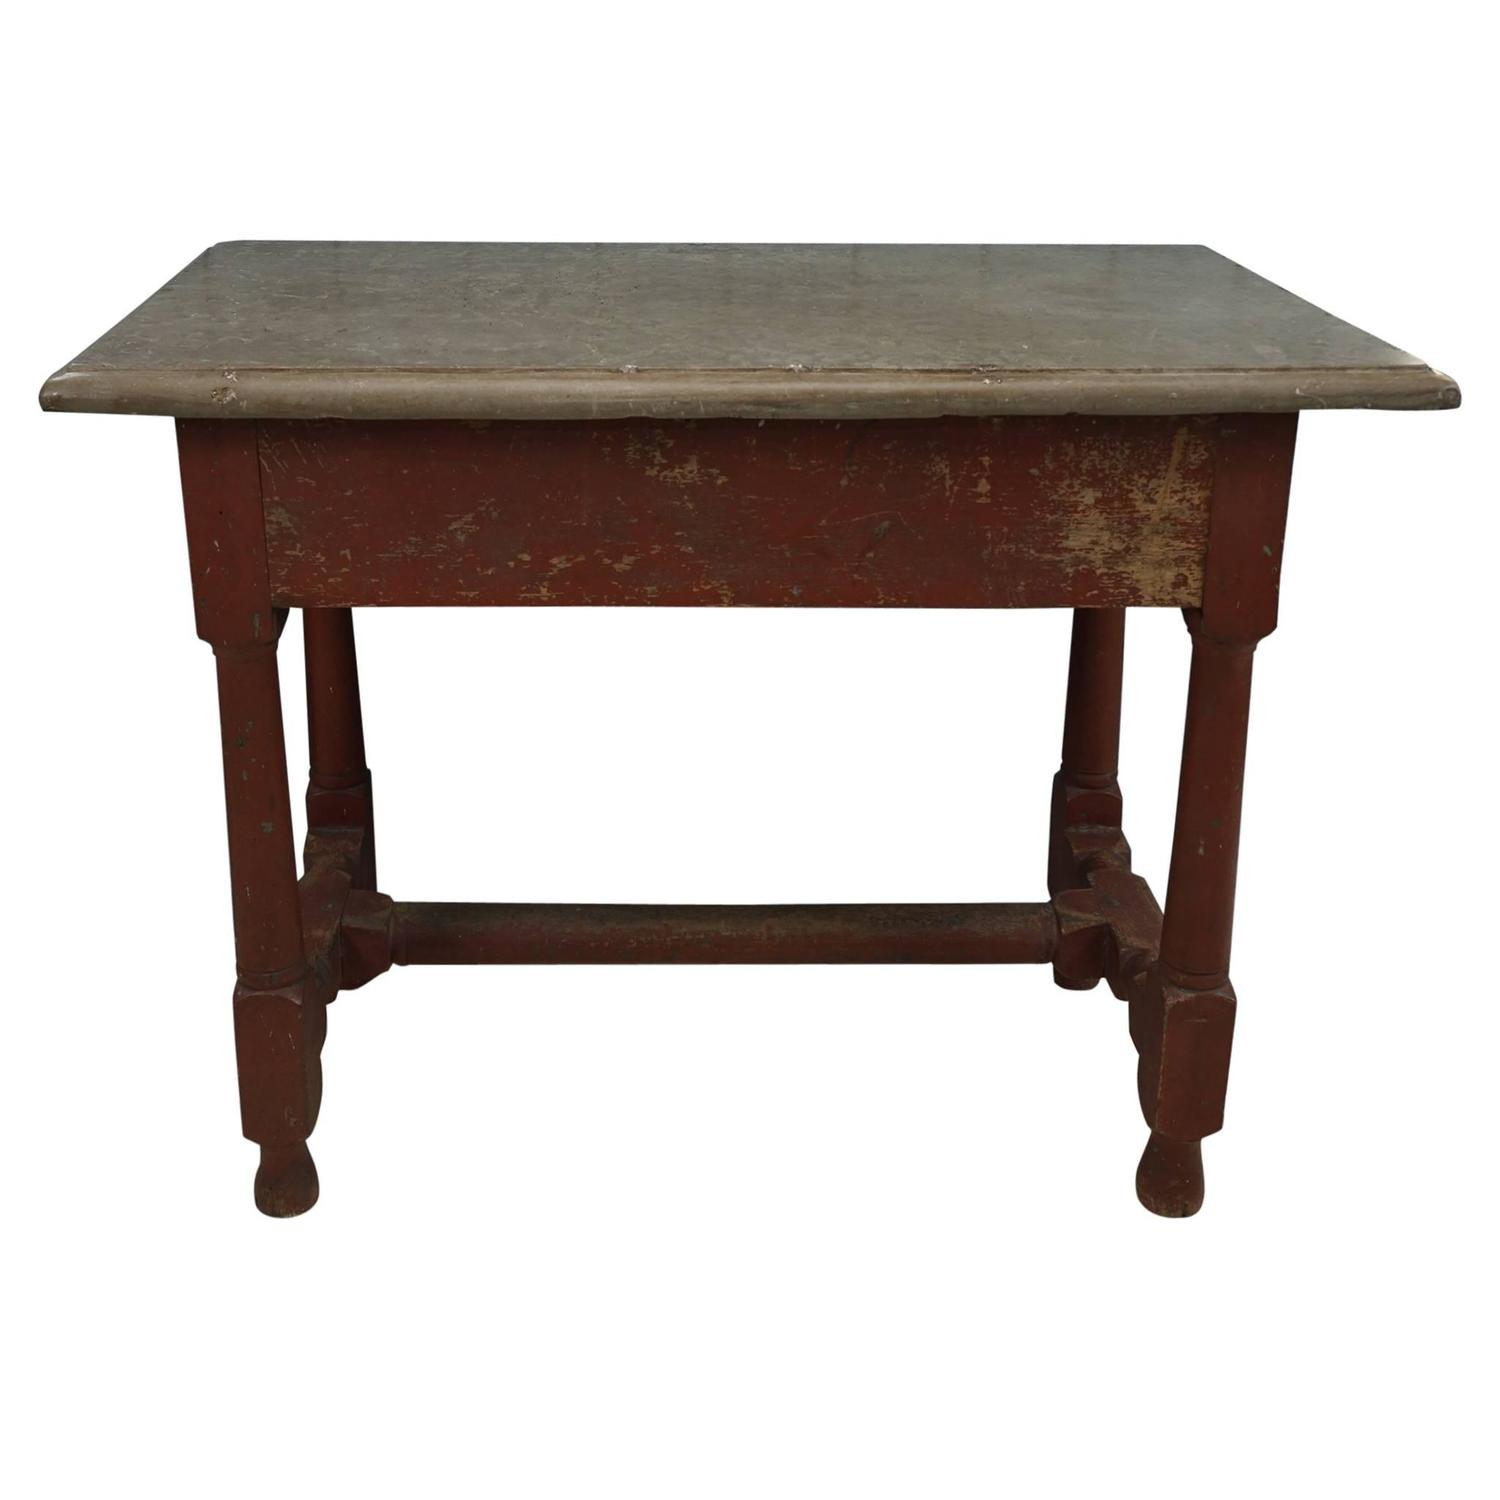 Swedish Baroque Öland Stone Top Table In Original Paint For Sale At 1stdibs